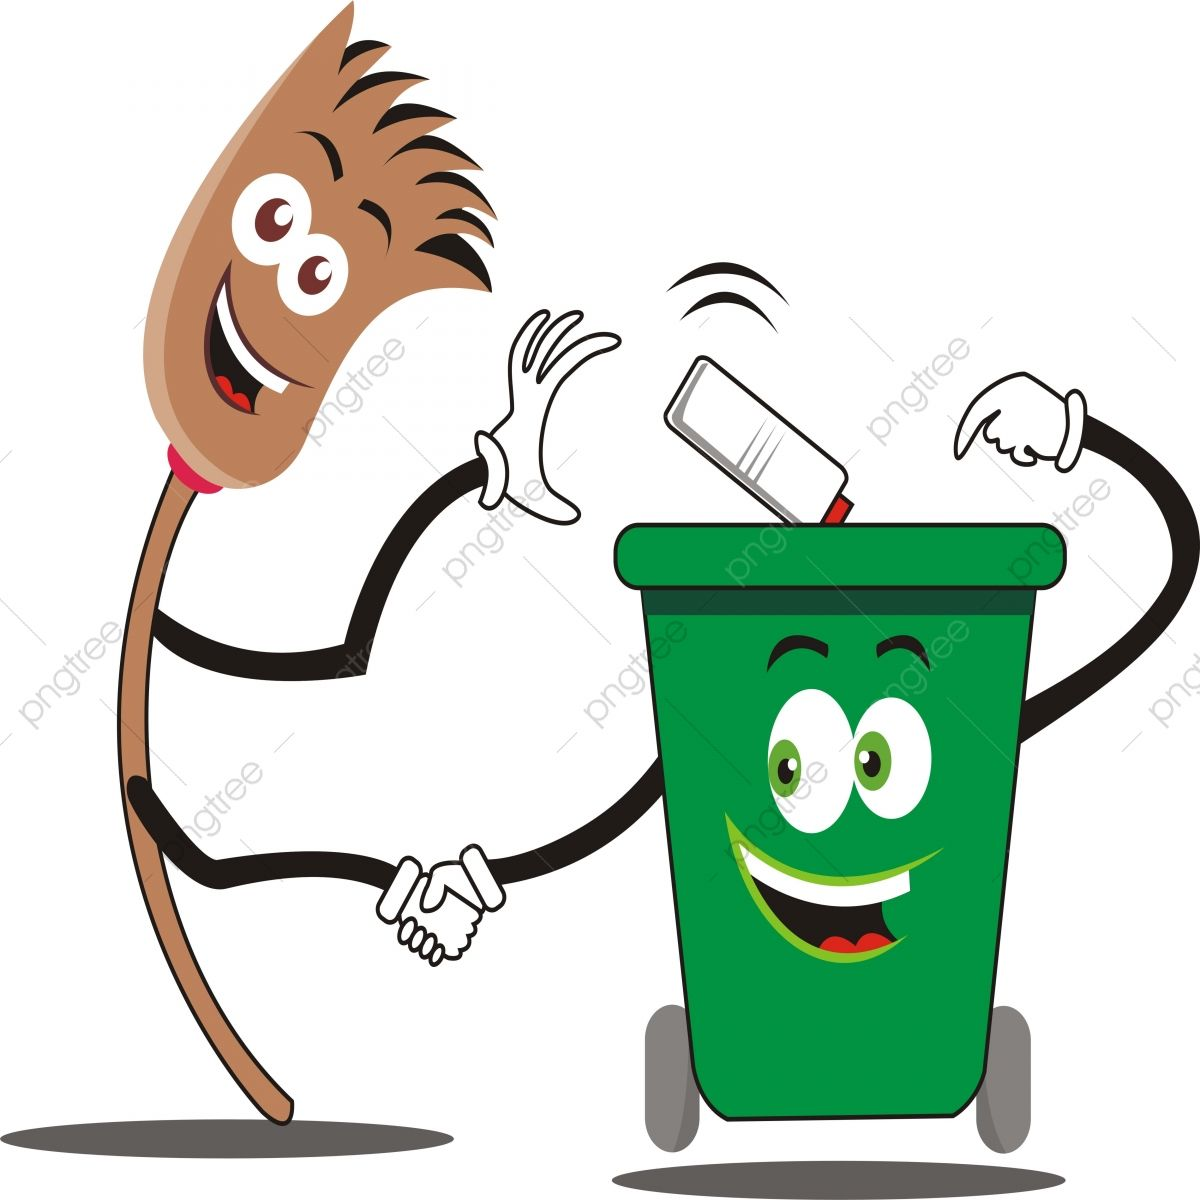 Friendship Brooms And Trash Cans Vector Illustration Can Trash Garbage Png And Vector With Transparent Background For Free Download Free Hand Drawing Poster Drawing Save Water Poster Drawing